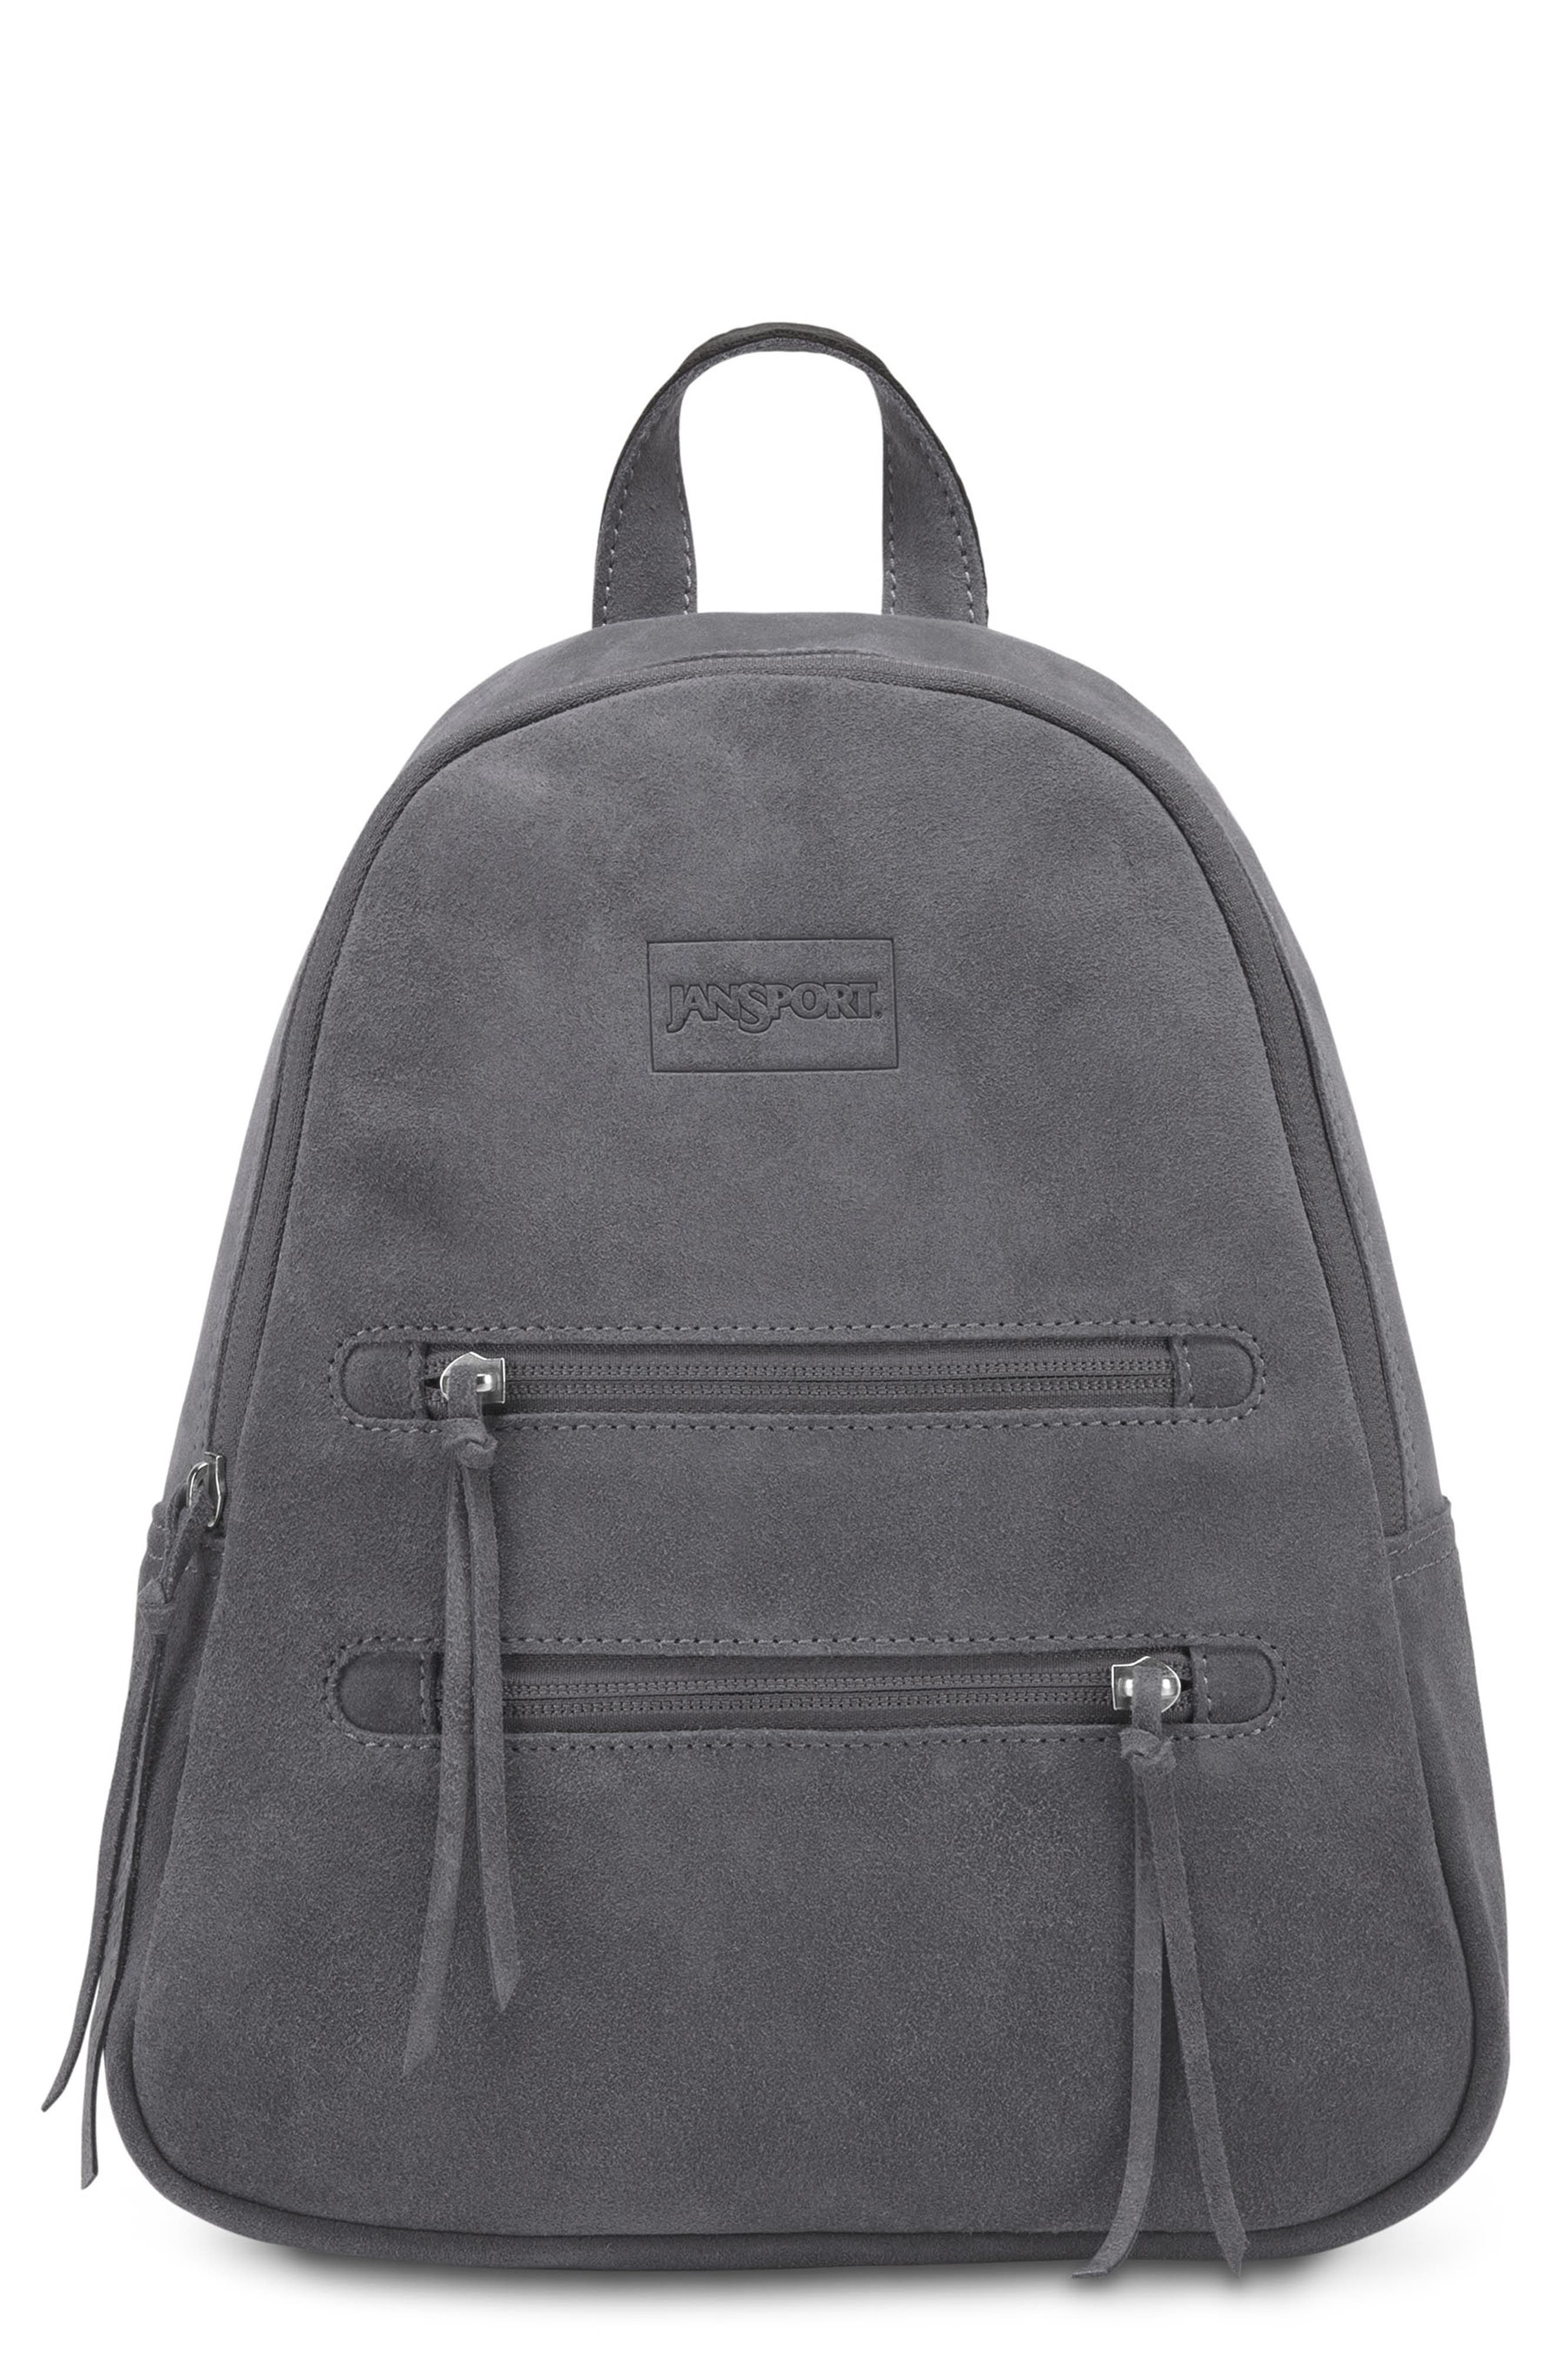 JANSPORT Desert Collection Mini Backpack - Grey in Mistral Grey Leather